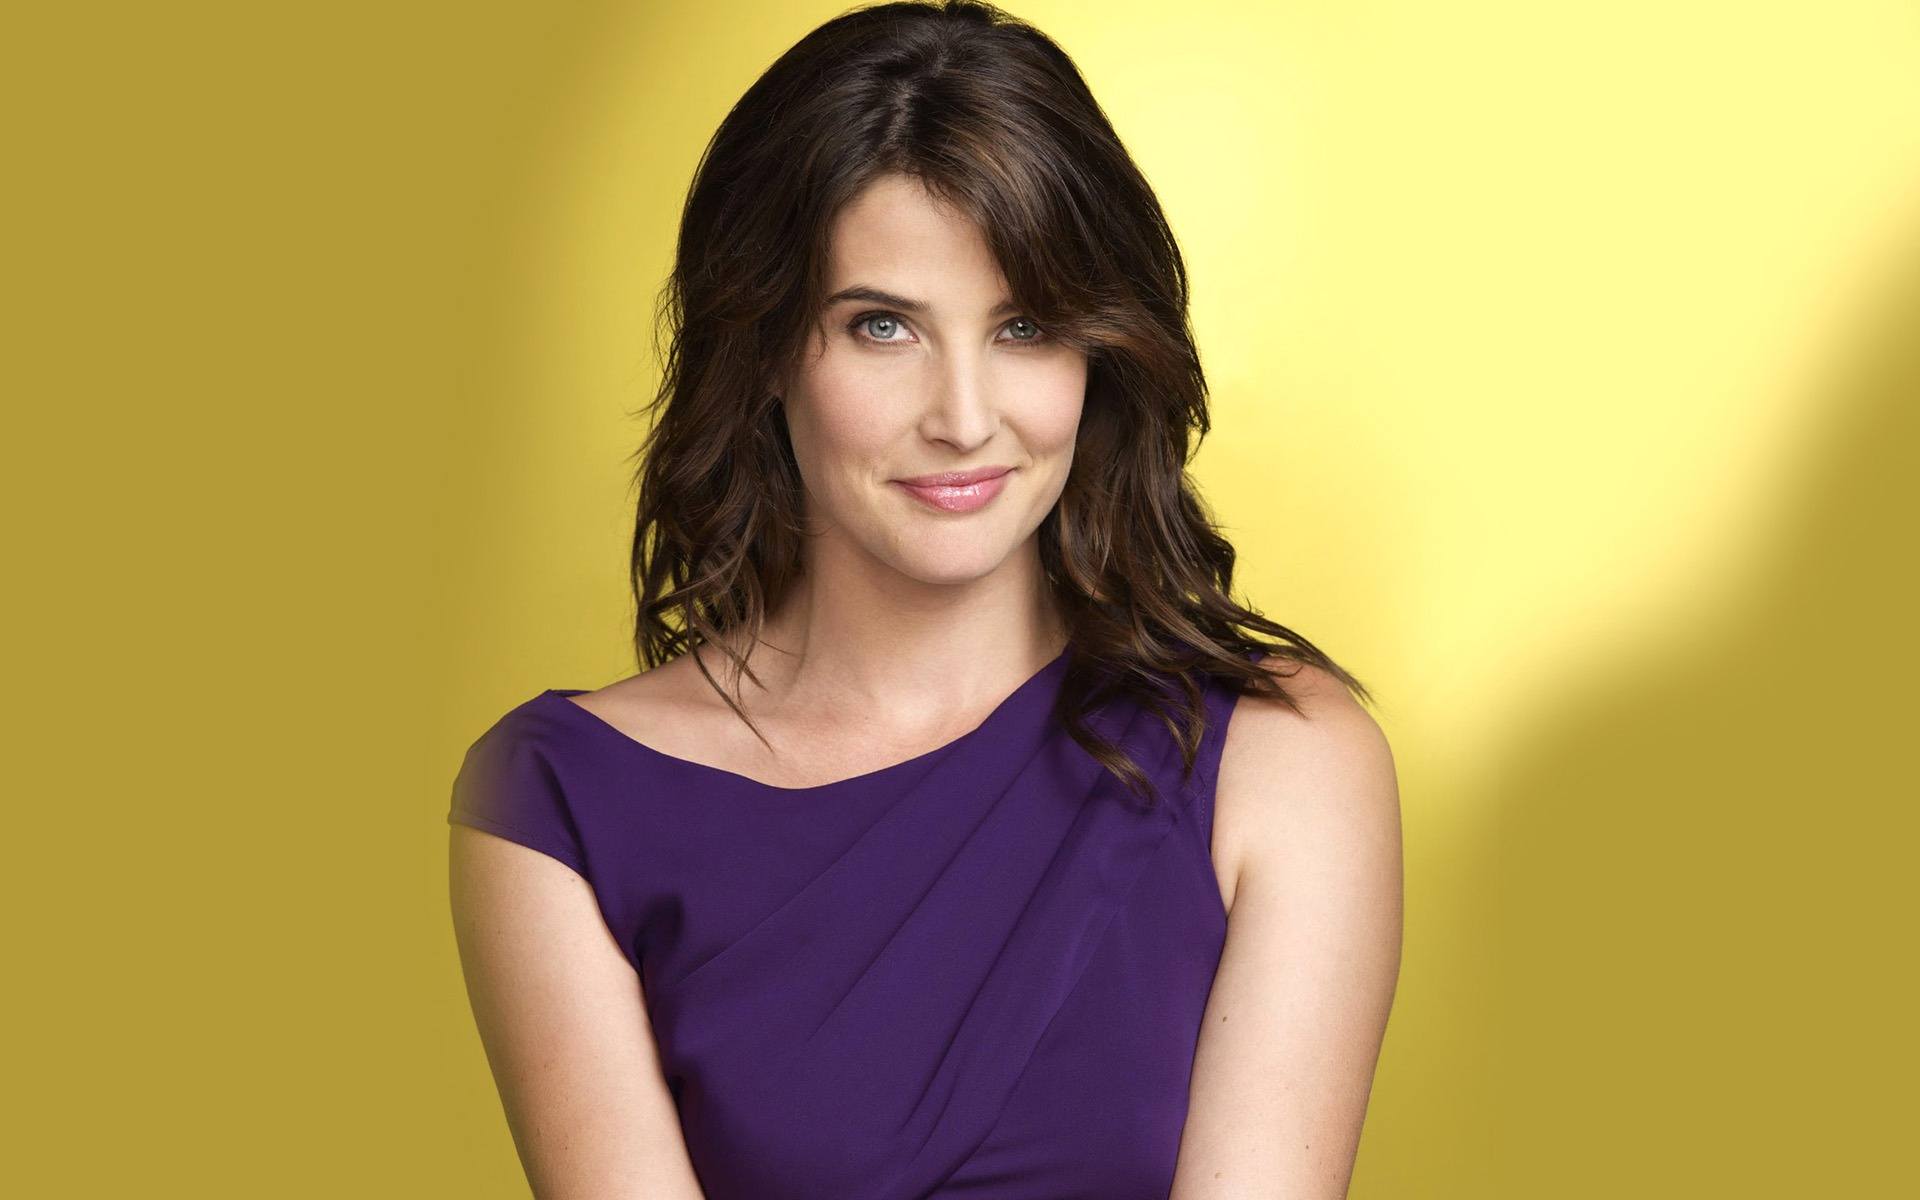 cobie smulders maxim hdcobie smulders фото, cobie smulders 2016, cobie smulders кинопоиск, cobie smulders 2017, cobie smulders инстаграм, cobie smulders wiki, cobie smulders gif hunt, cobie smulders husband, cobie smulders insta, cobie smulders maxim hd, cobie smulders wikipedia, cobie smulders fansite, cobie smulders site, cobie smulders рак, cobie smulders imdb, cobie smulders photoshoots, cobie smulders son, cobie smulders interview, cobie smulders and josh radnor together, cobie smulders gallery